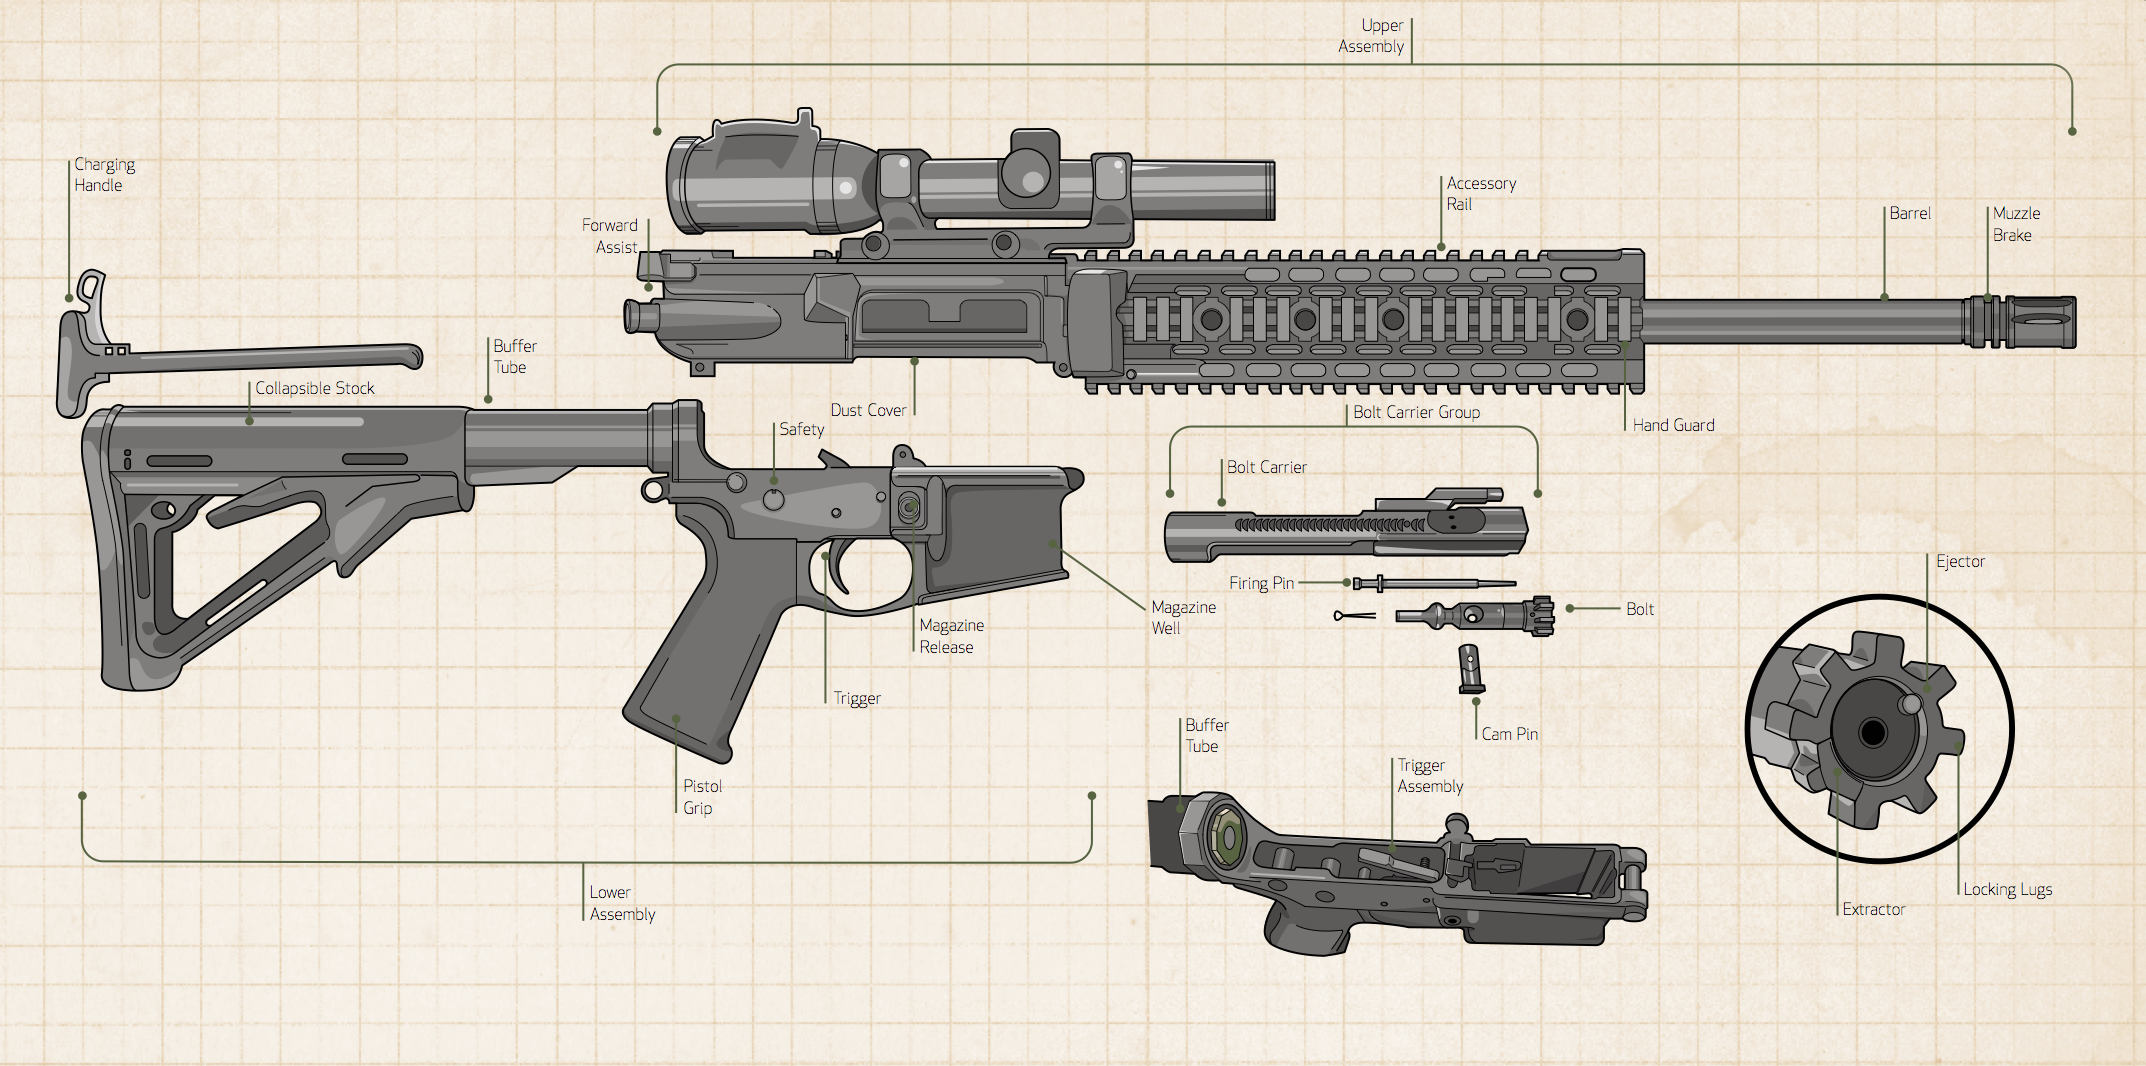 Gun History: Know Where the AR Came From